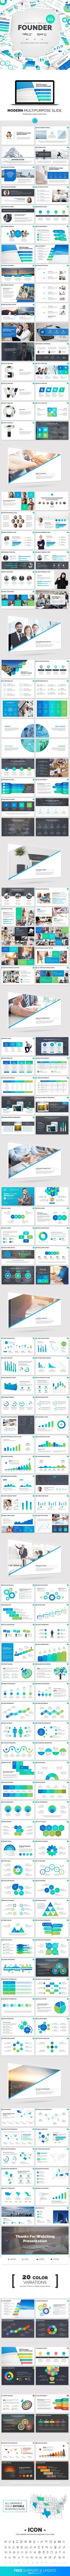 Founder Powerpoint Template - Business PowerPoint Templates